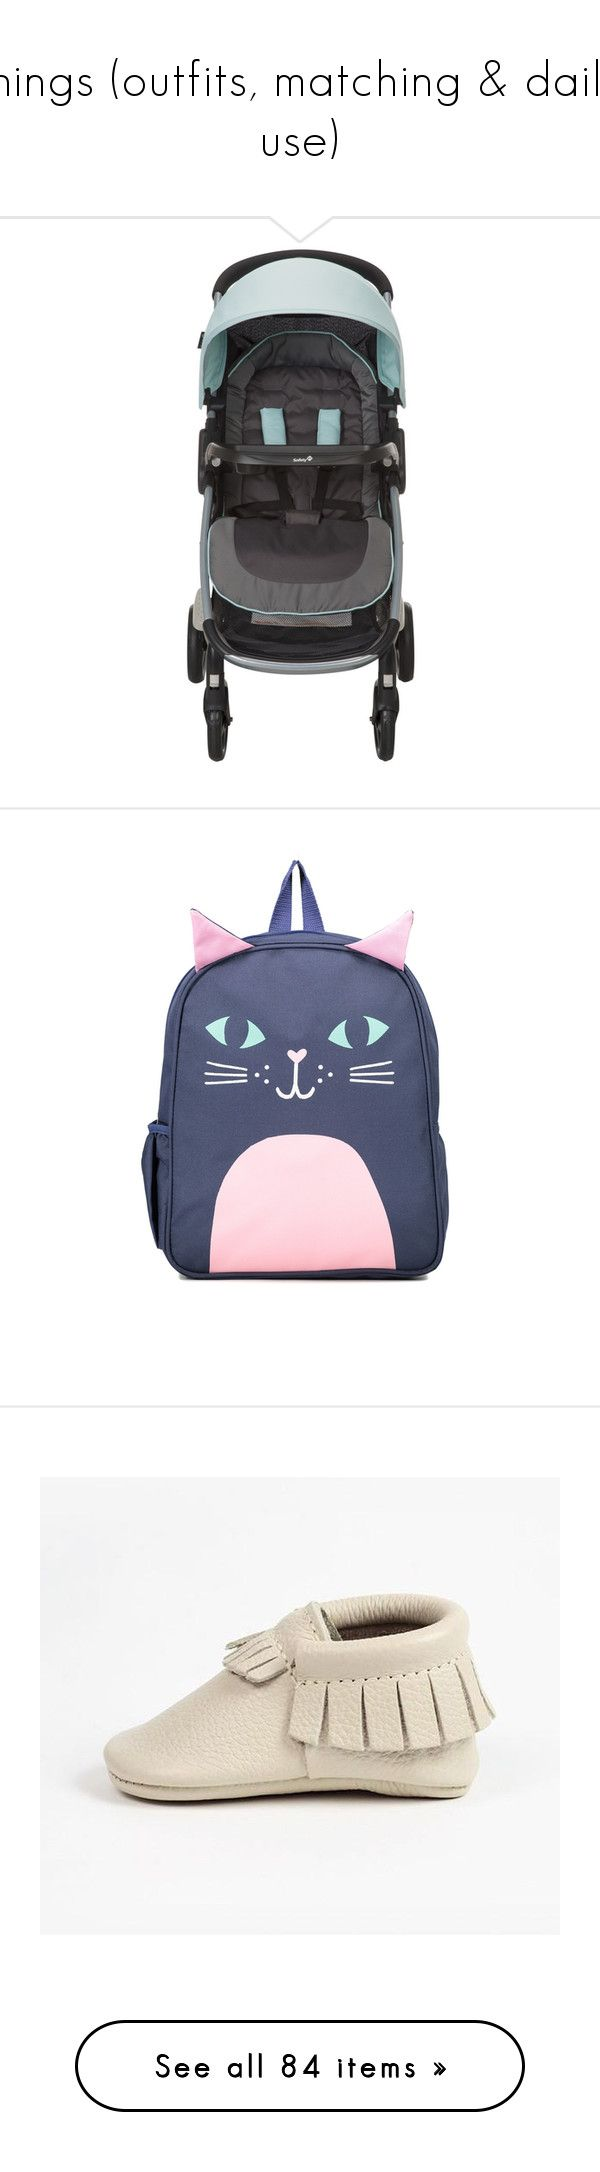 """""""things (outfits, matching & daily use)"""" by littlebiglove ❤ liked on Polyvore featuring bags, backpacks, rucksack bags, unicorn backpack, backpack bags, unicorn bag, knapsack bag, shoes, loafers and mocassin shoes"""